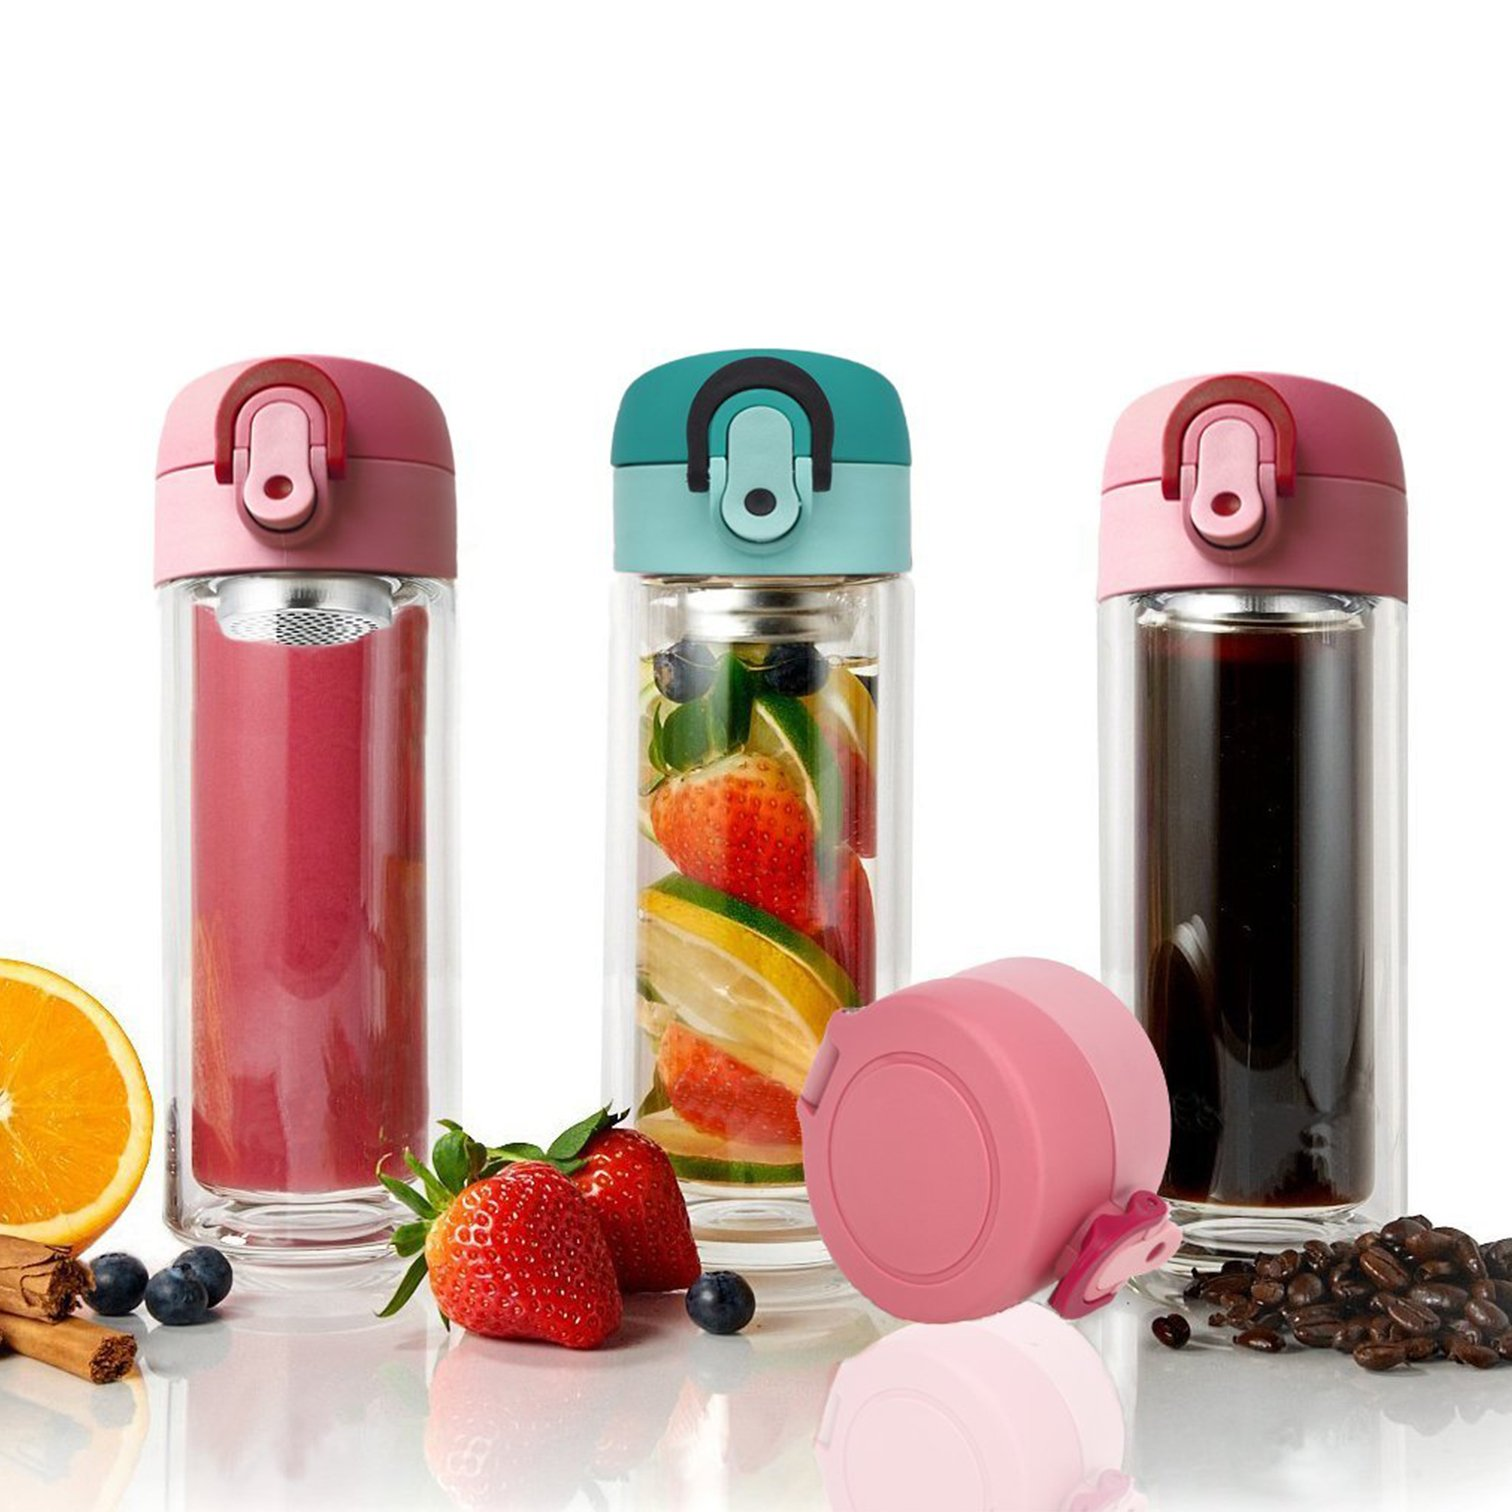 TENTA Kitchen 300ml Double Wall Glass Tea Infuser Mug Tumbler, Fruit Infusion Glass Bottle & Coffee Brewer with Built-in and Seal-Well Leaf Filter(Pink)